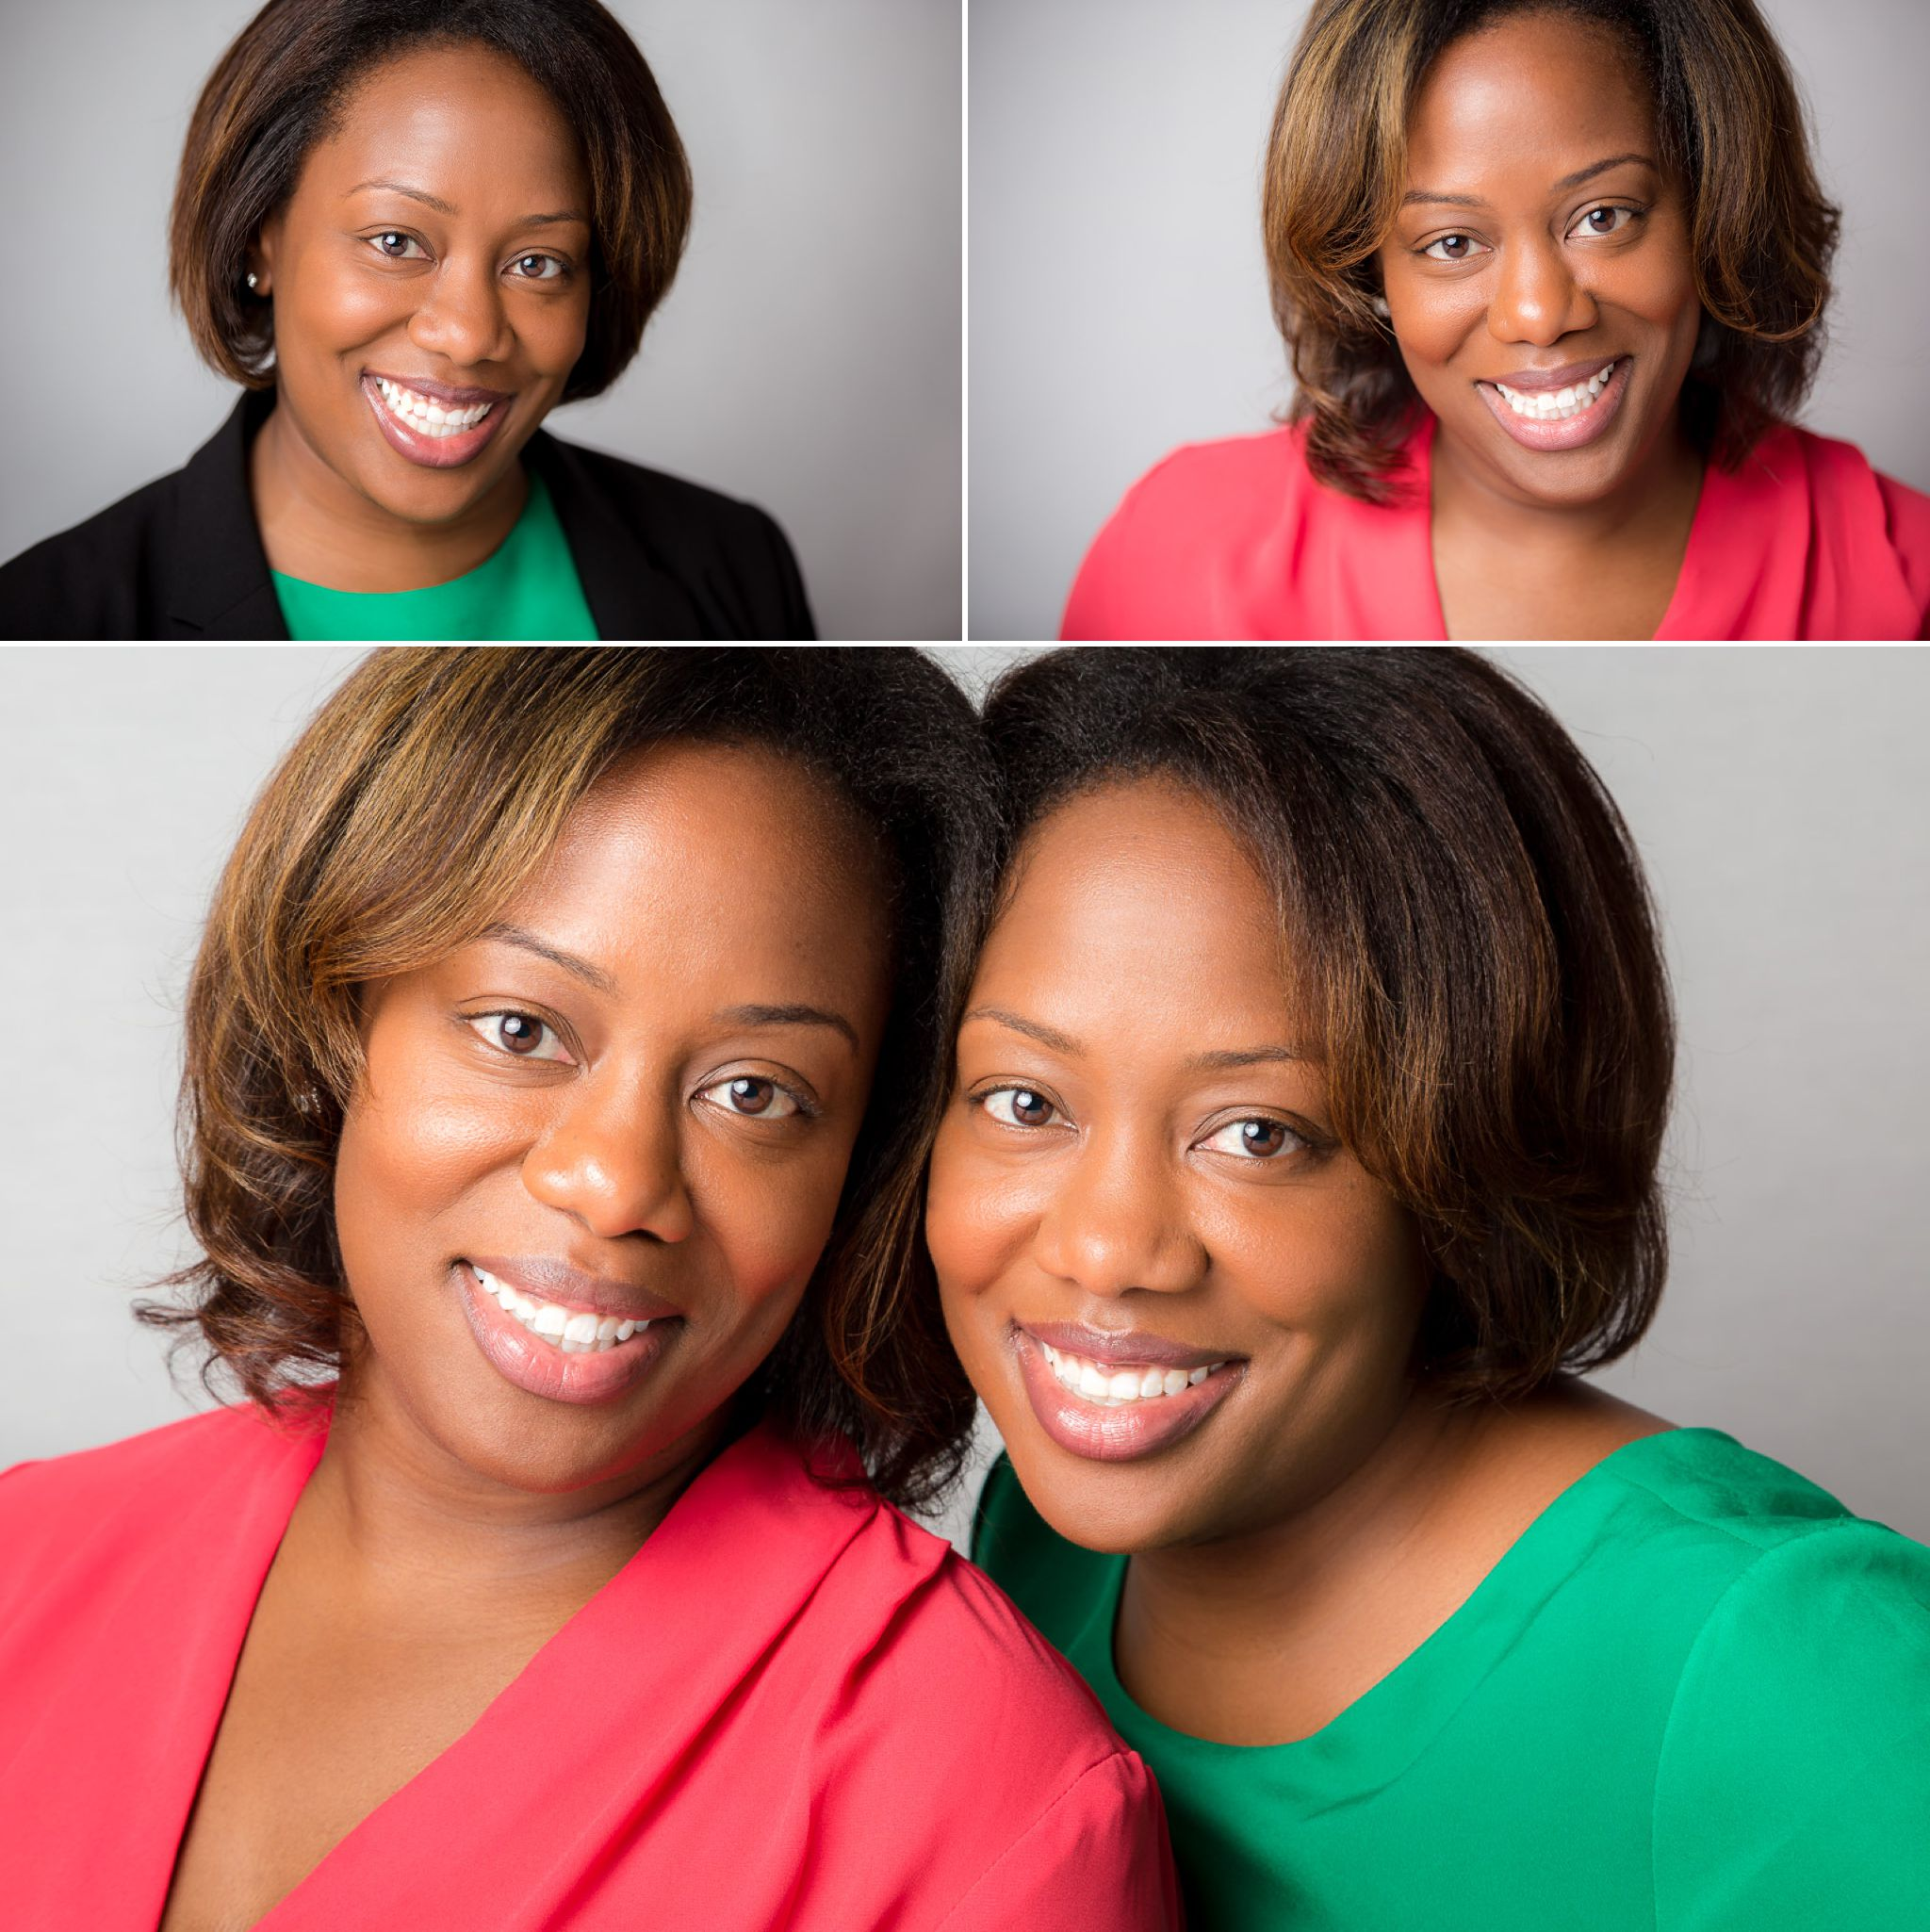 Women 1-Headshots-Washington-DC-Lenzy-Ruffin-Photography.jpg